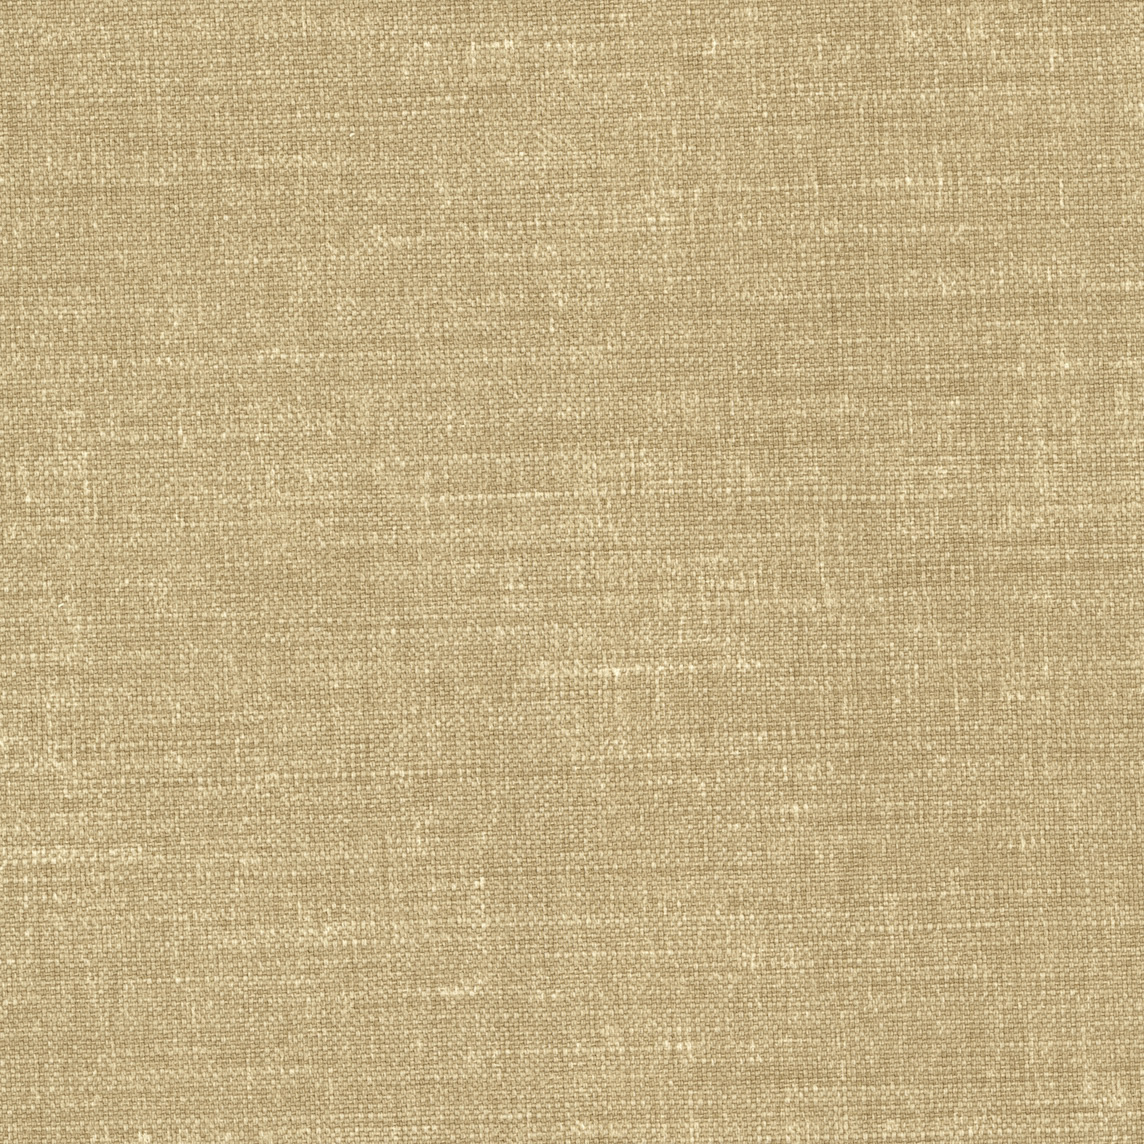 3 Caleido stampato beige